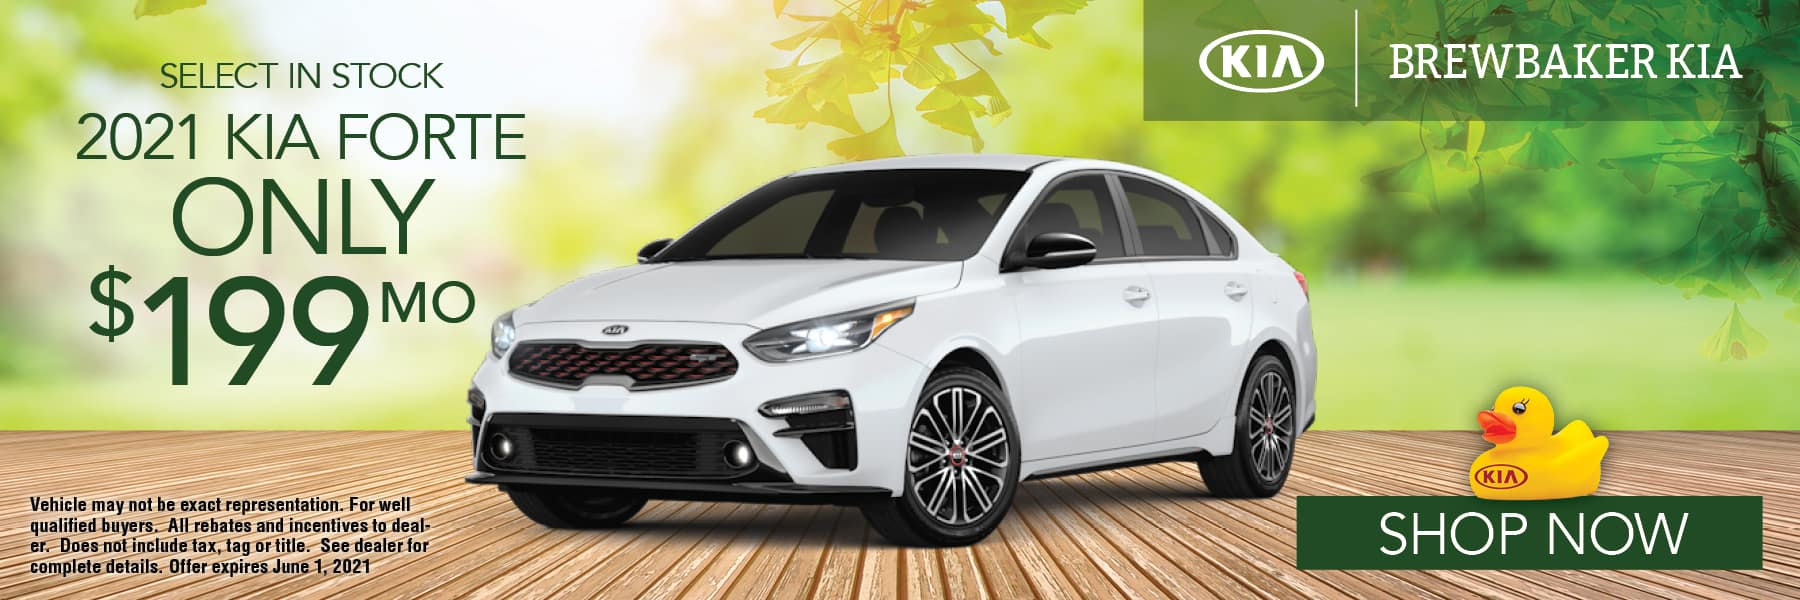 KiaForte_May_1800x600